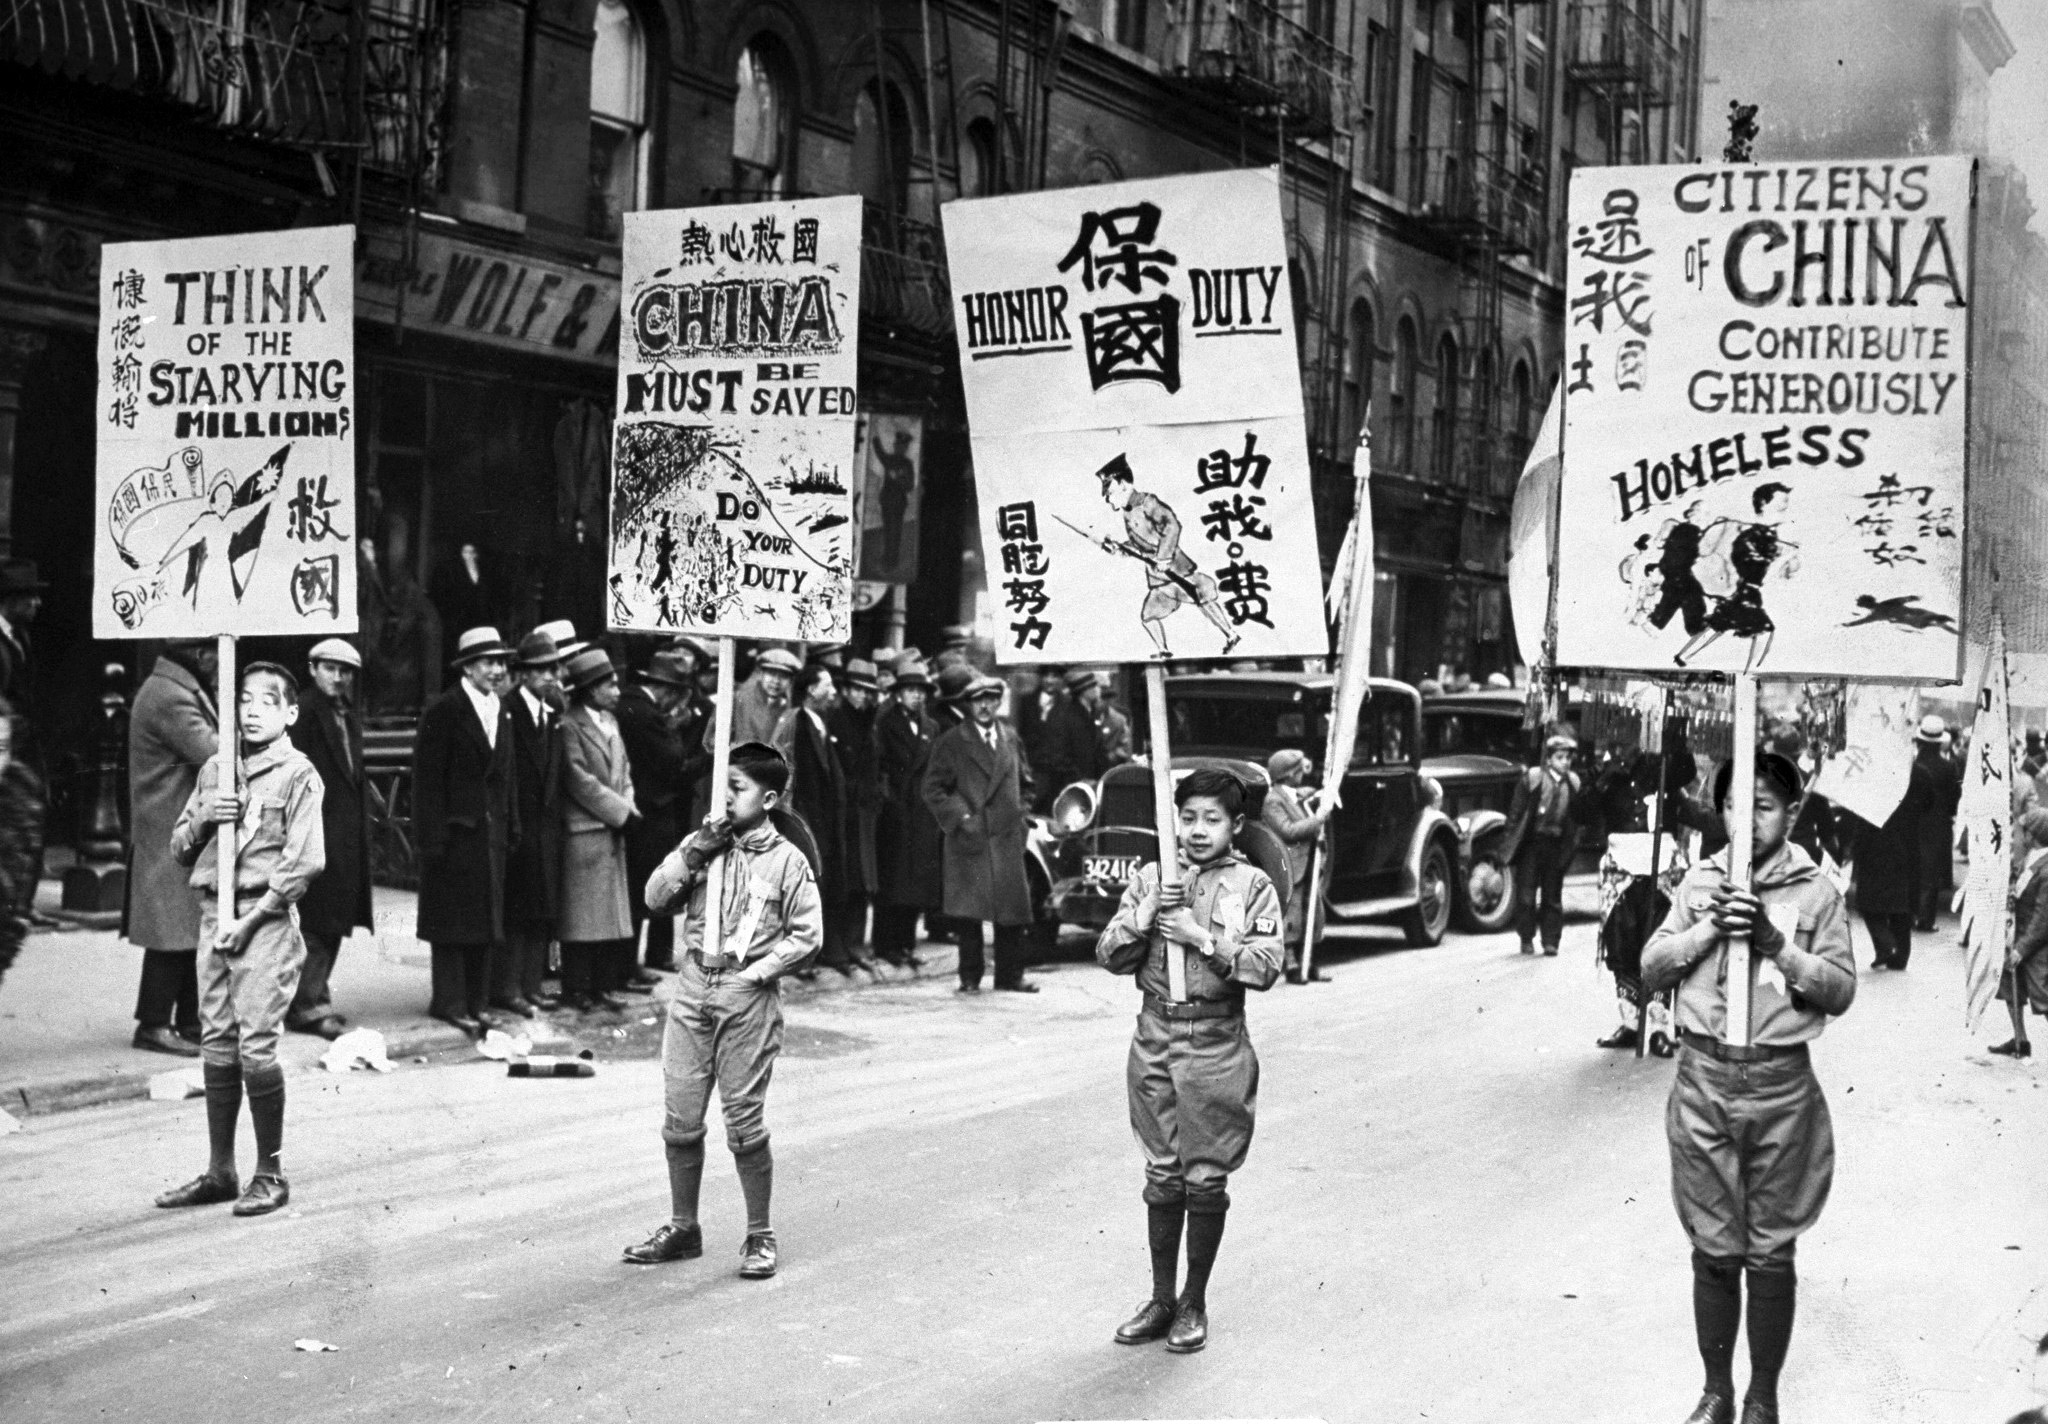 Boy Scouts carry banners in parade through Chinatown seeking aid for China's homeless.